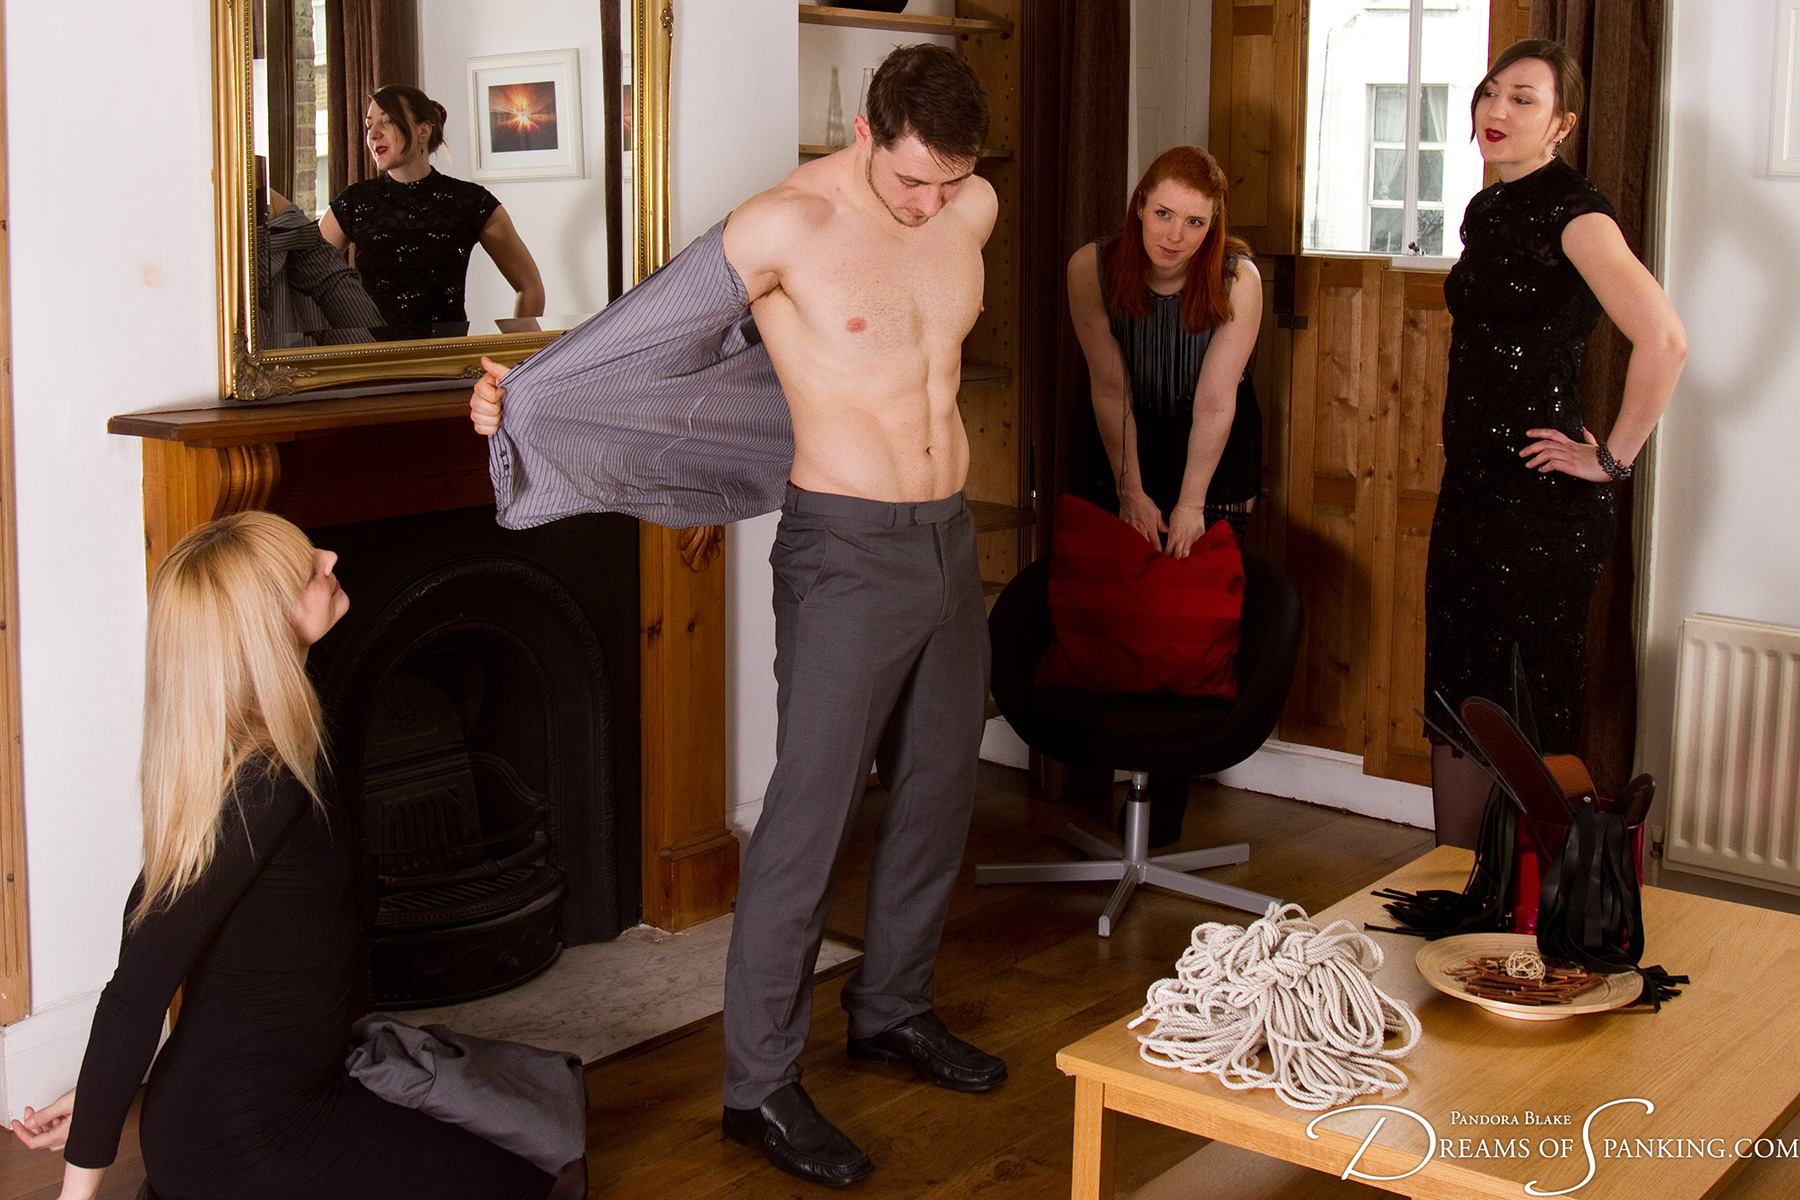 The Baroness' new houseboy presents himself for inspection and initiation.